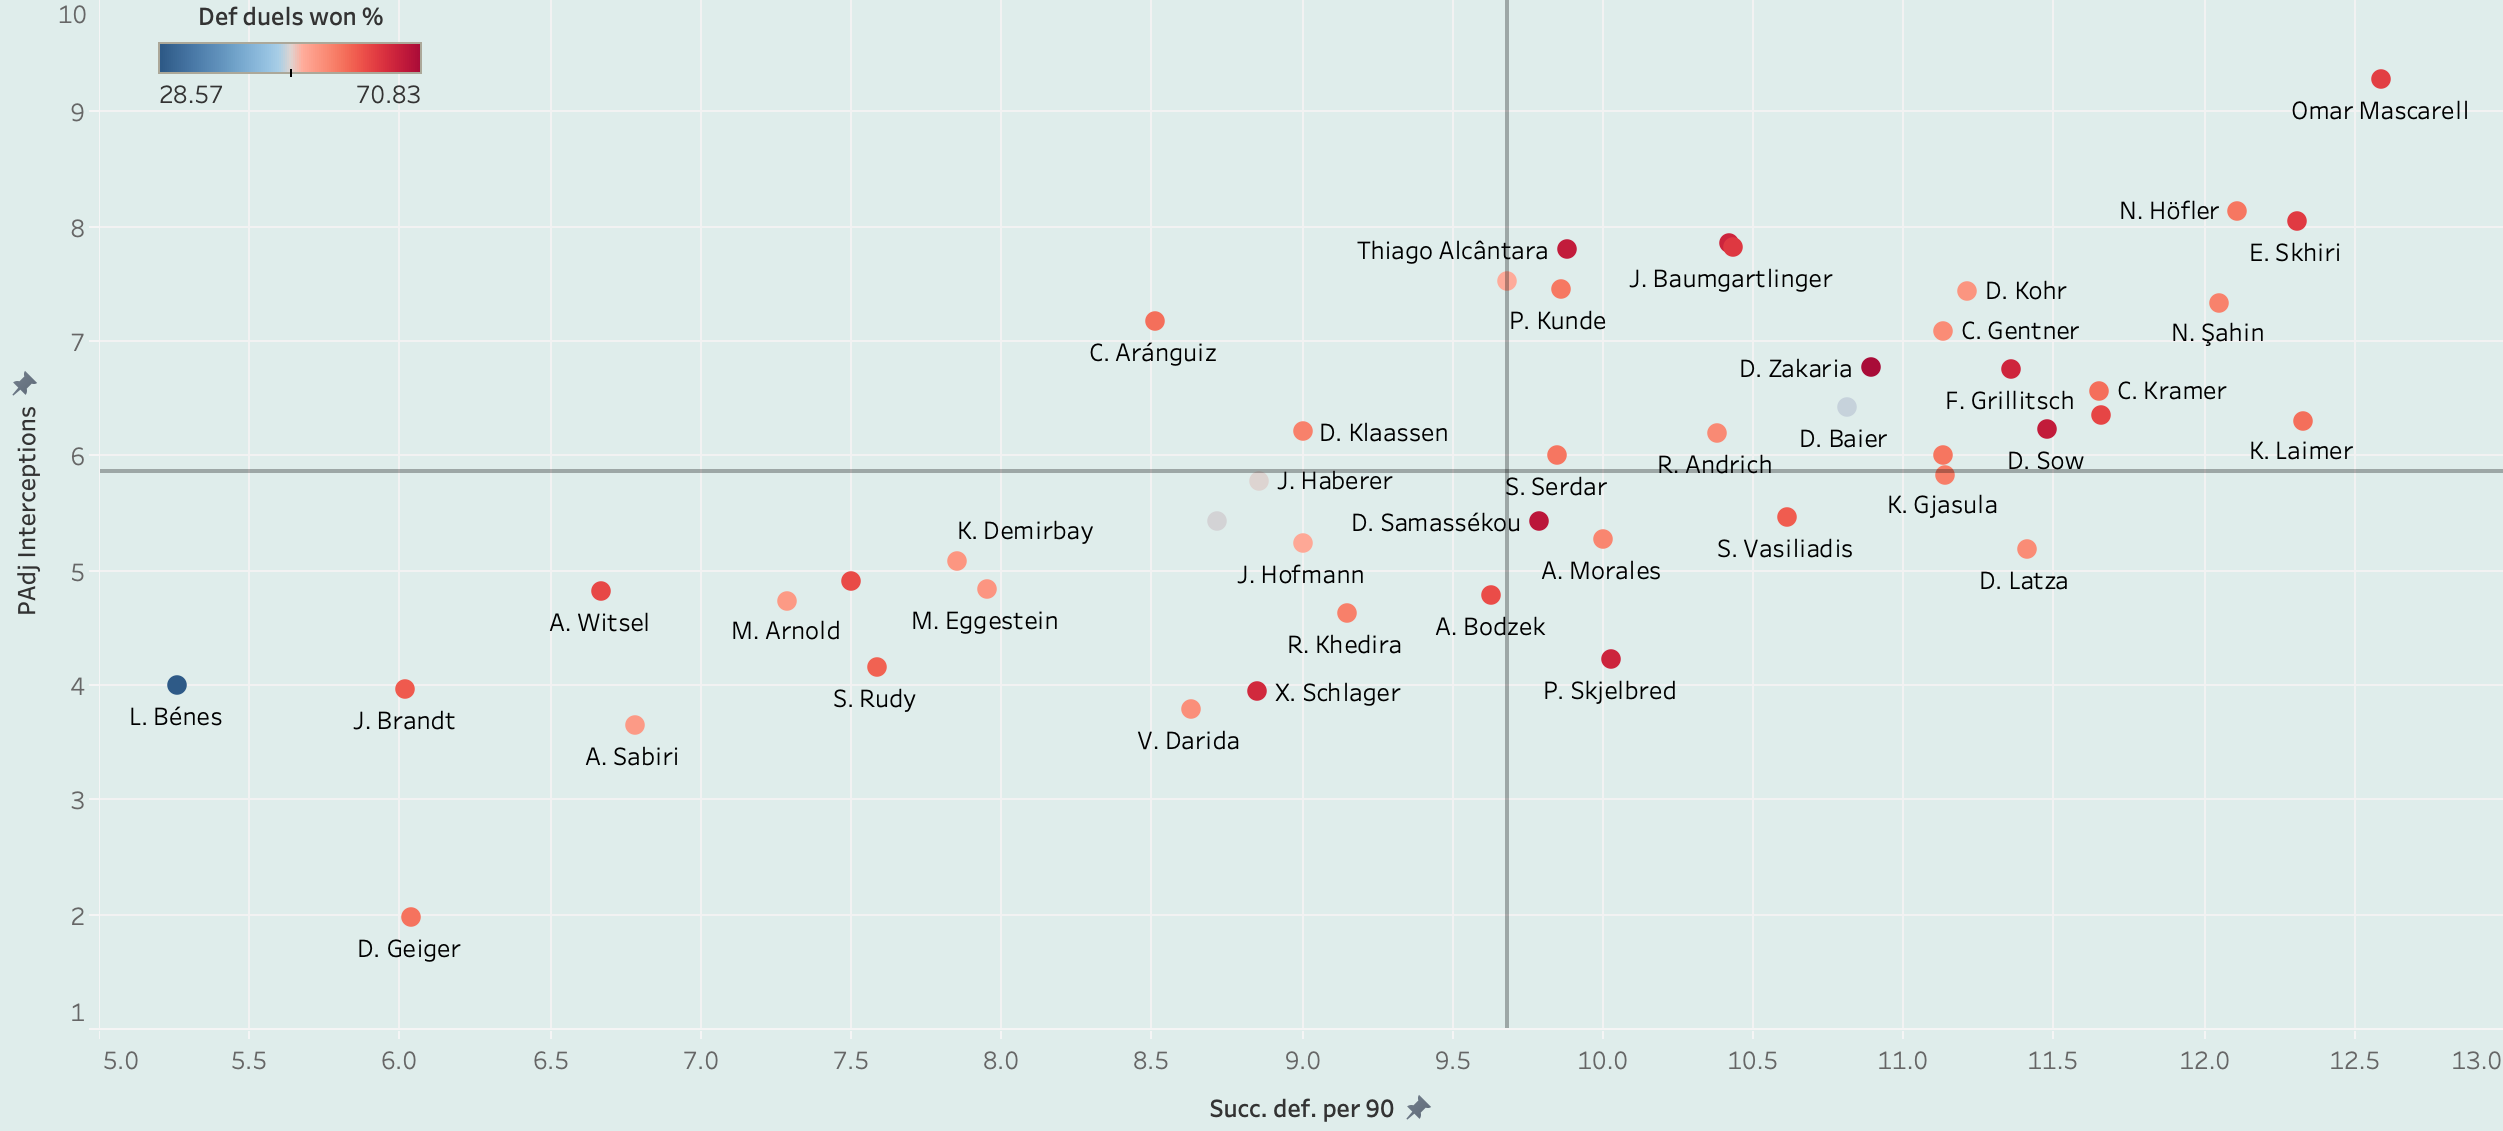 Finding the best central midfielders in Bundesliga - data analysis statistics